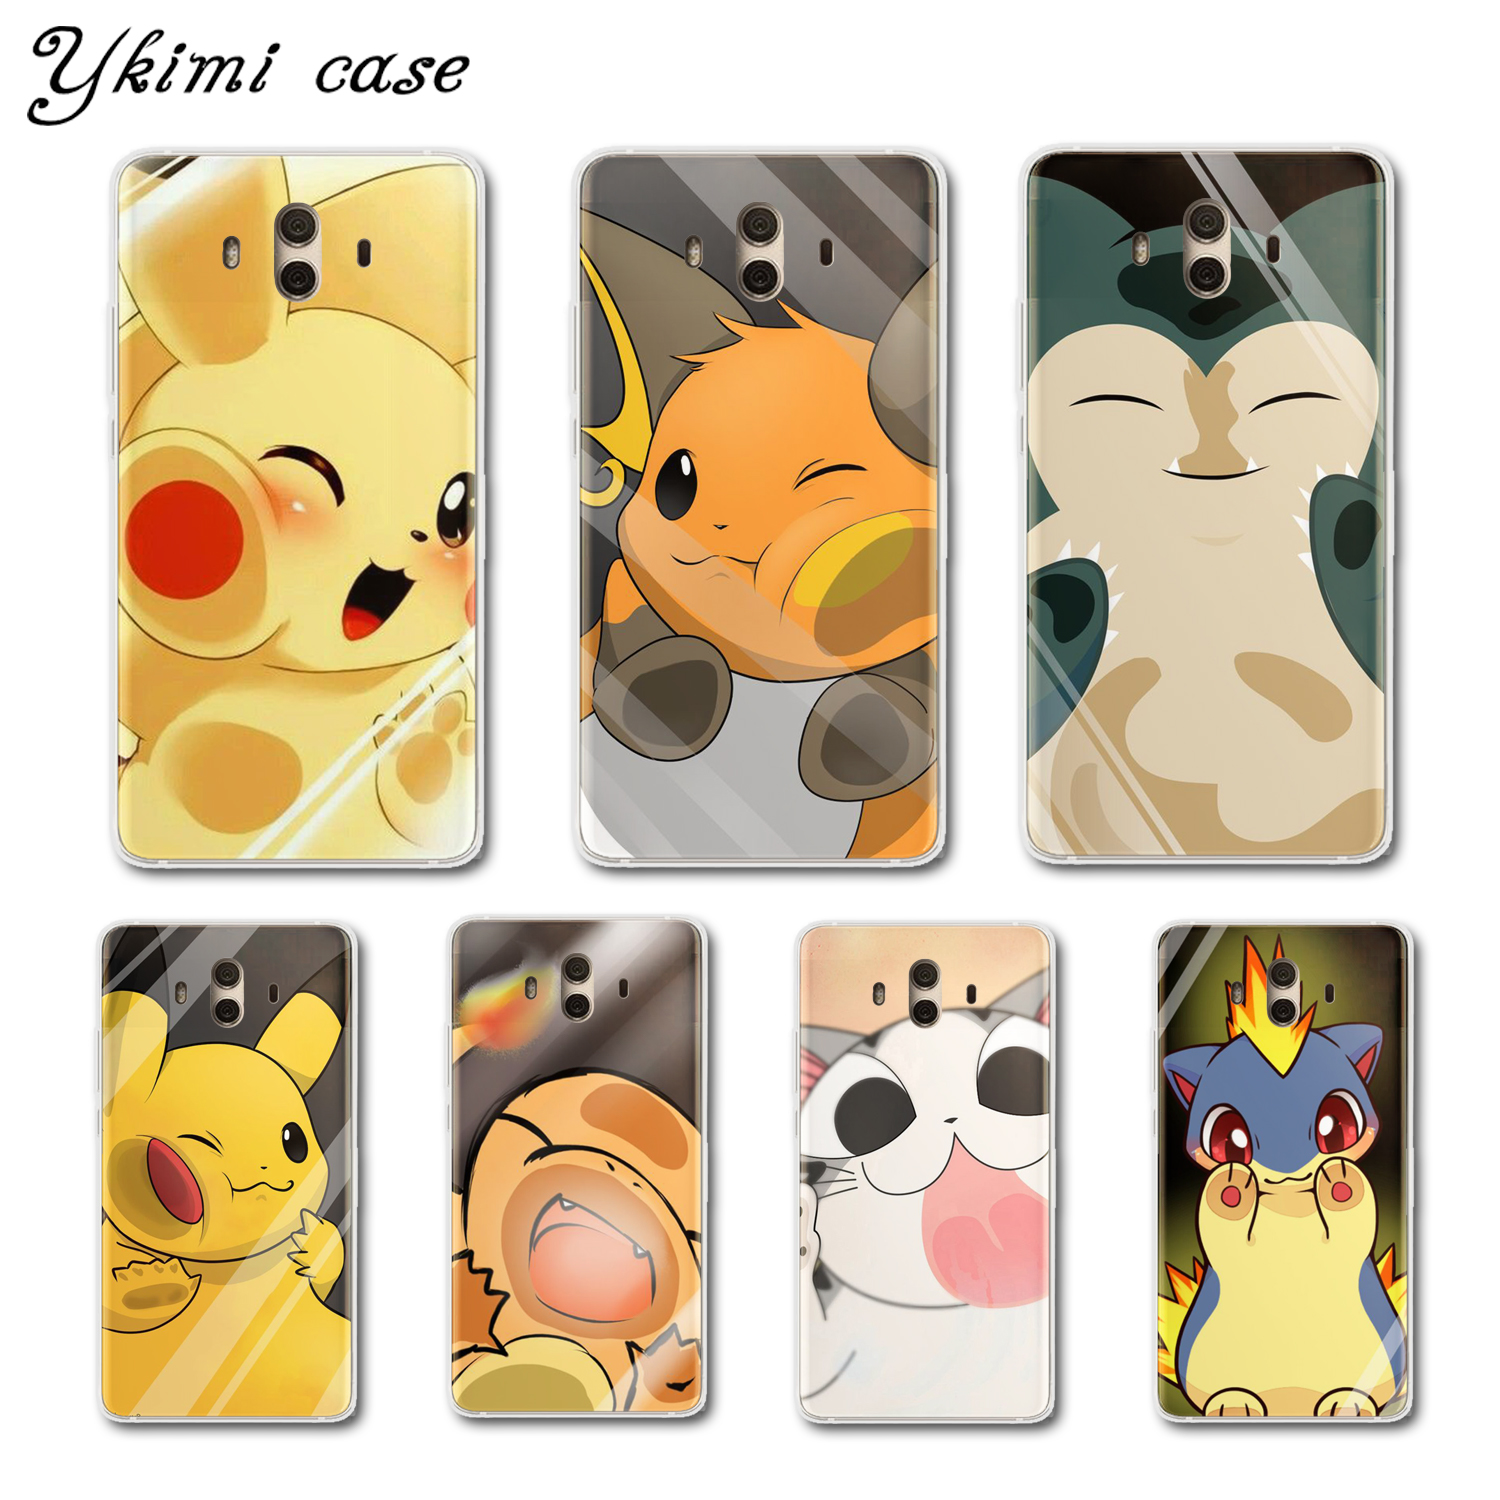 ykimi-case-soft-tpu-silicone-font-b-pokemon-b-font-face-hits-the-glass-cover-for-huawei-mate-8-9-10-lite-pro-case-nova-lite-2-2s-3-3i-3e-case